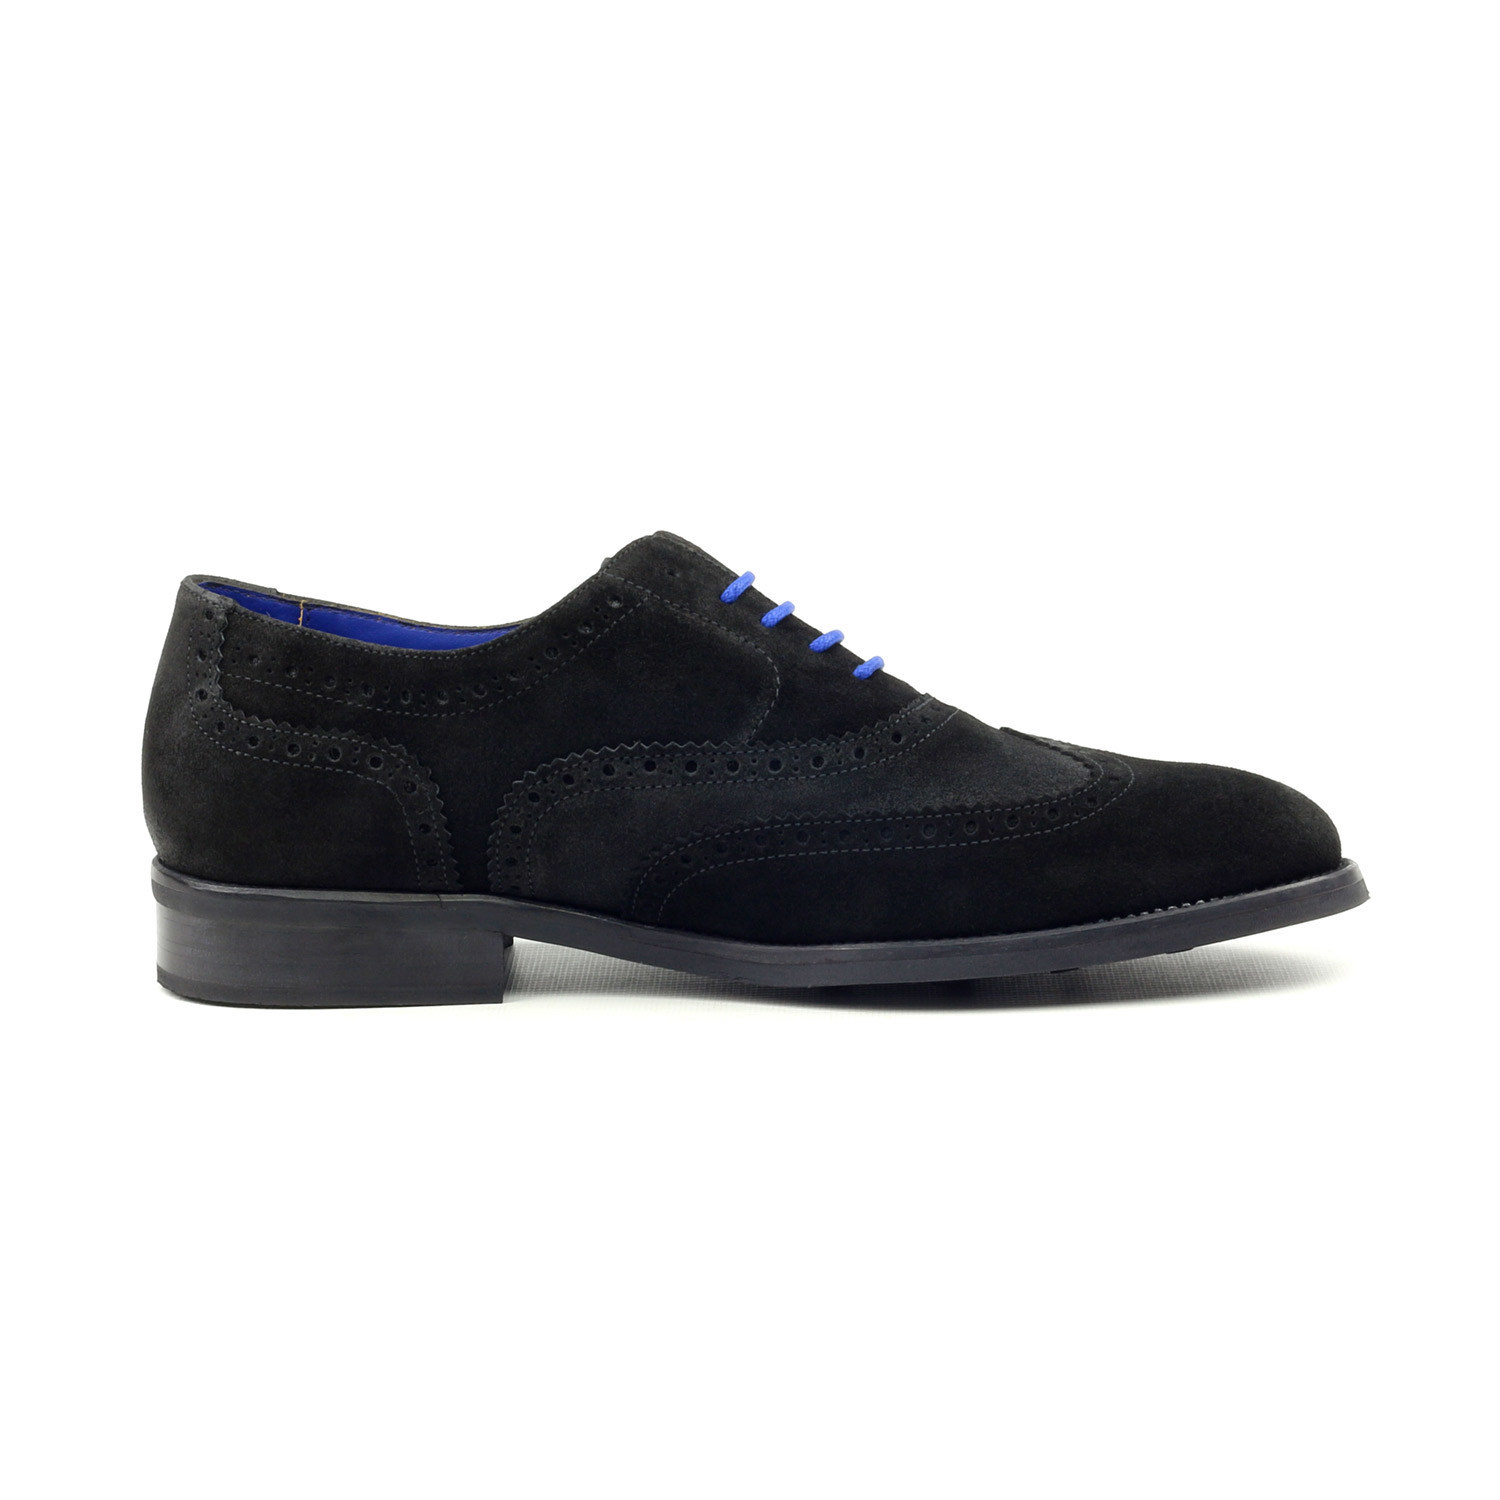 rooster league suede brogue oxford black 39 rooster league shoes touch of modern